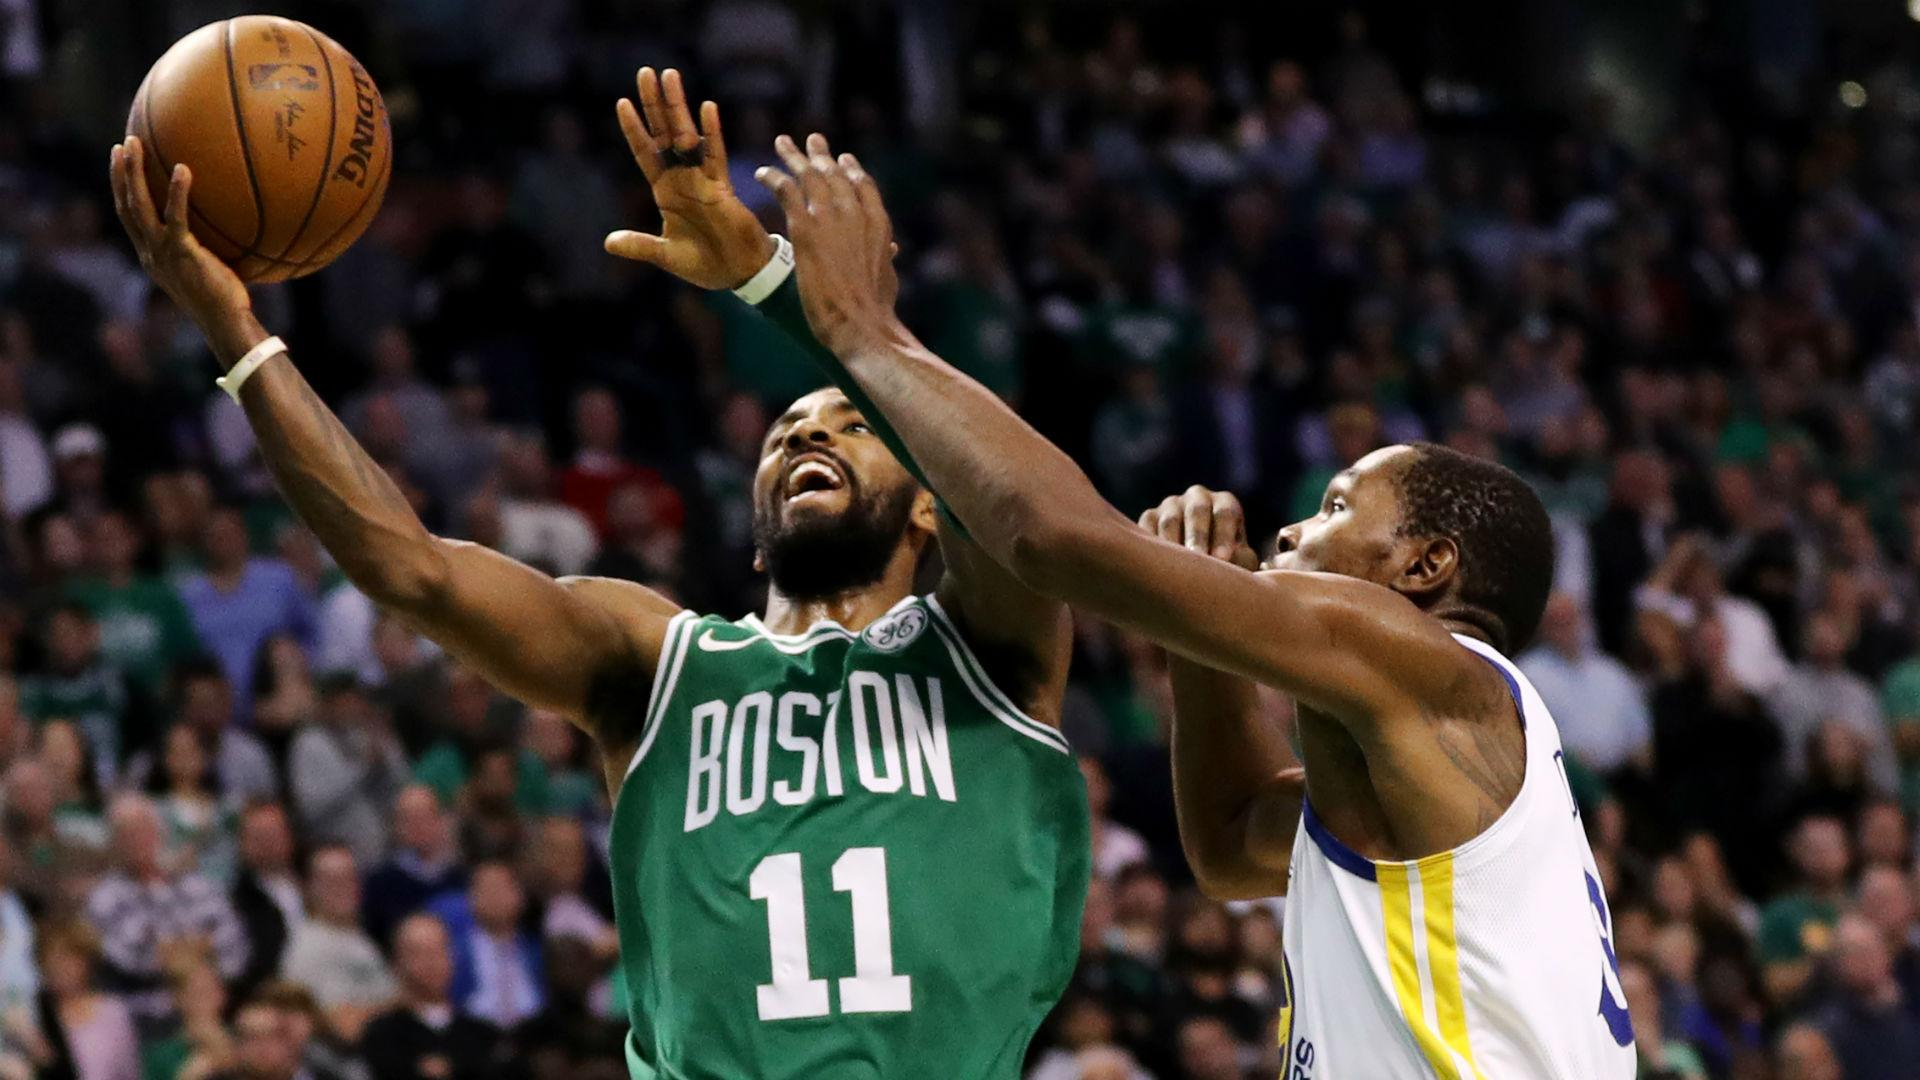 Celtics vs. Warriors: Score, results, highlights from Golden State's close win